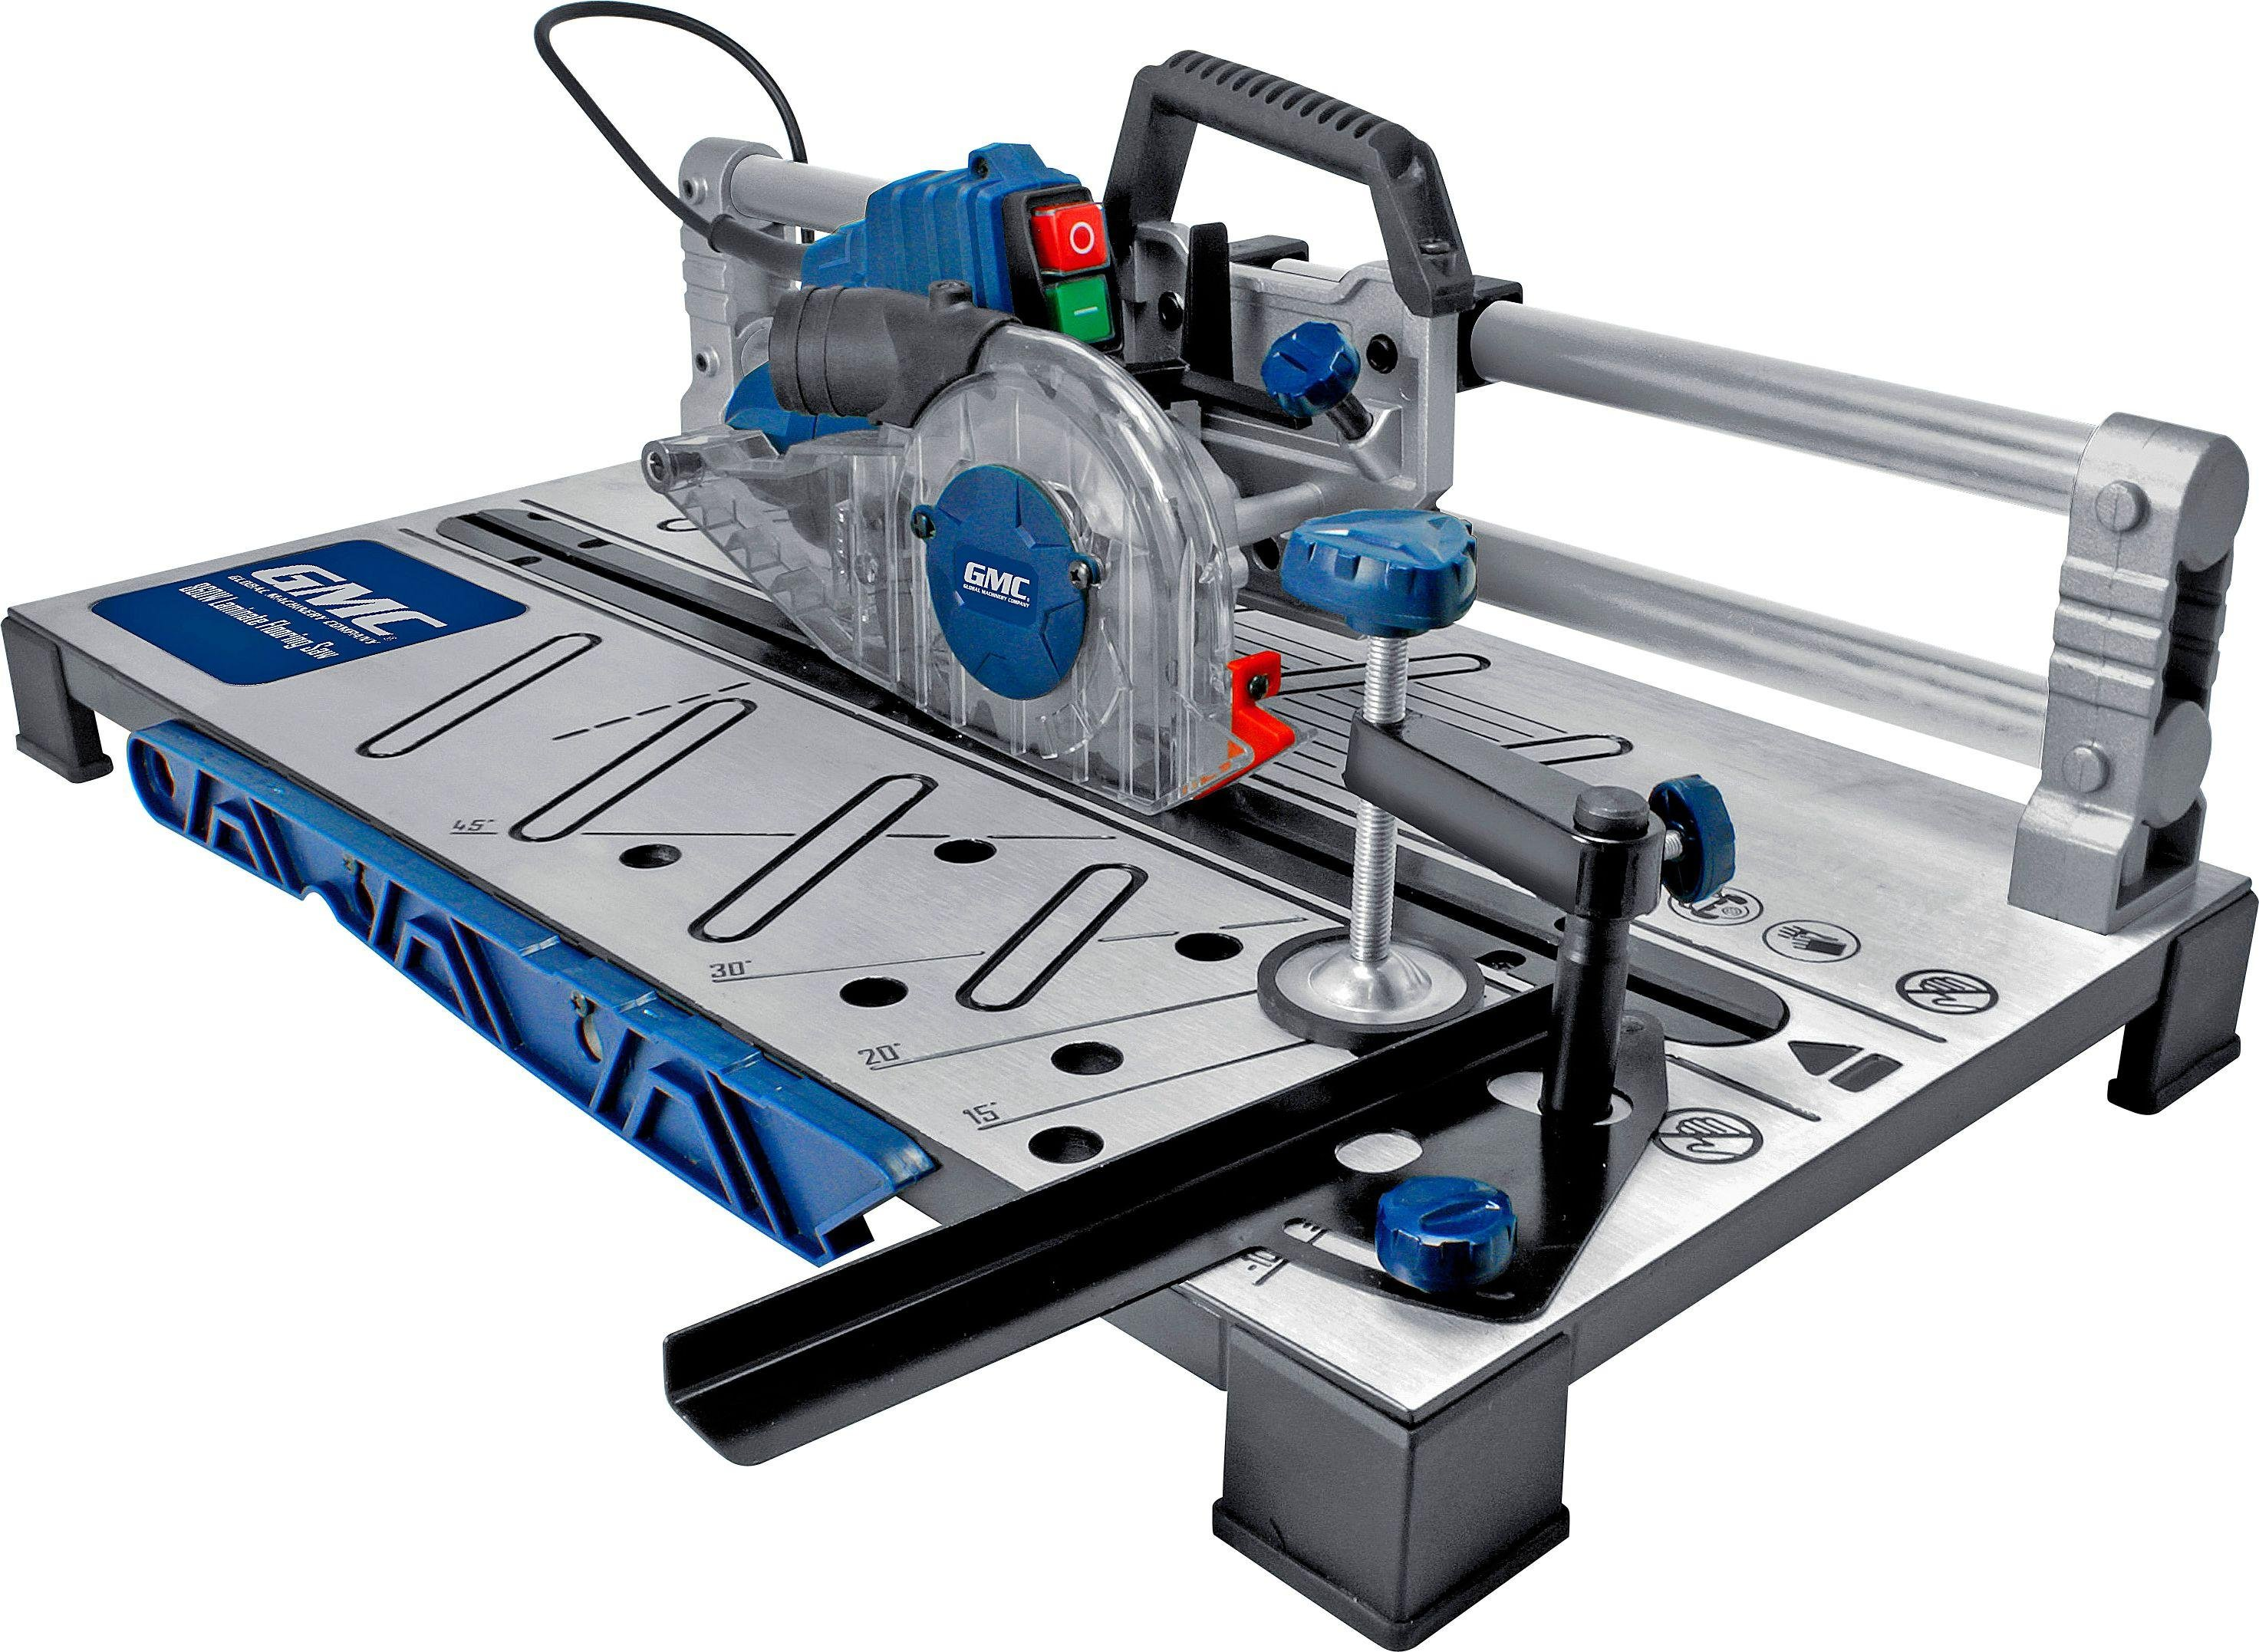 GMC - MS018 Laminate Flooring Saw 125mm 860w lowest price